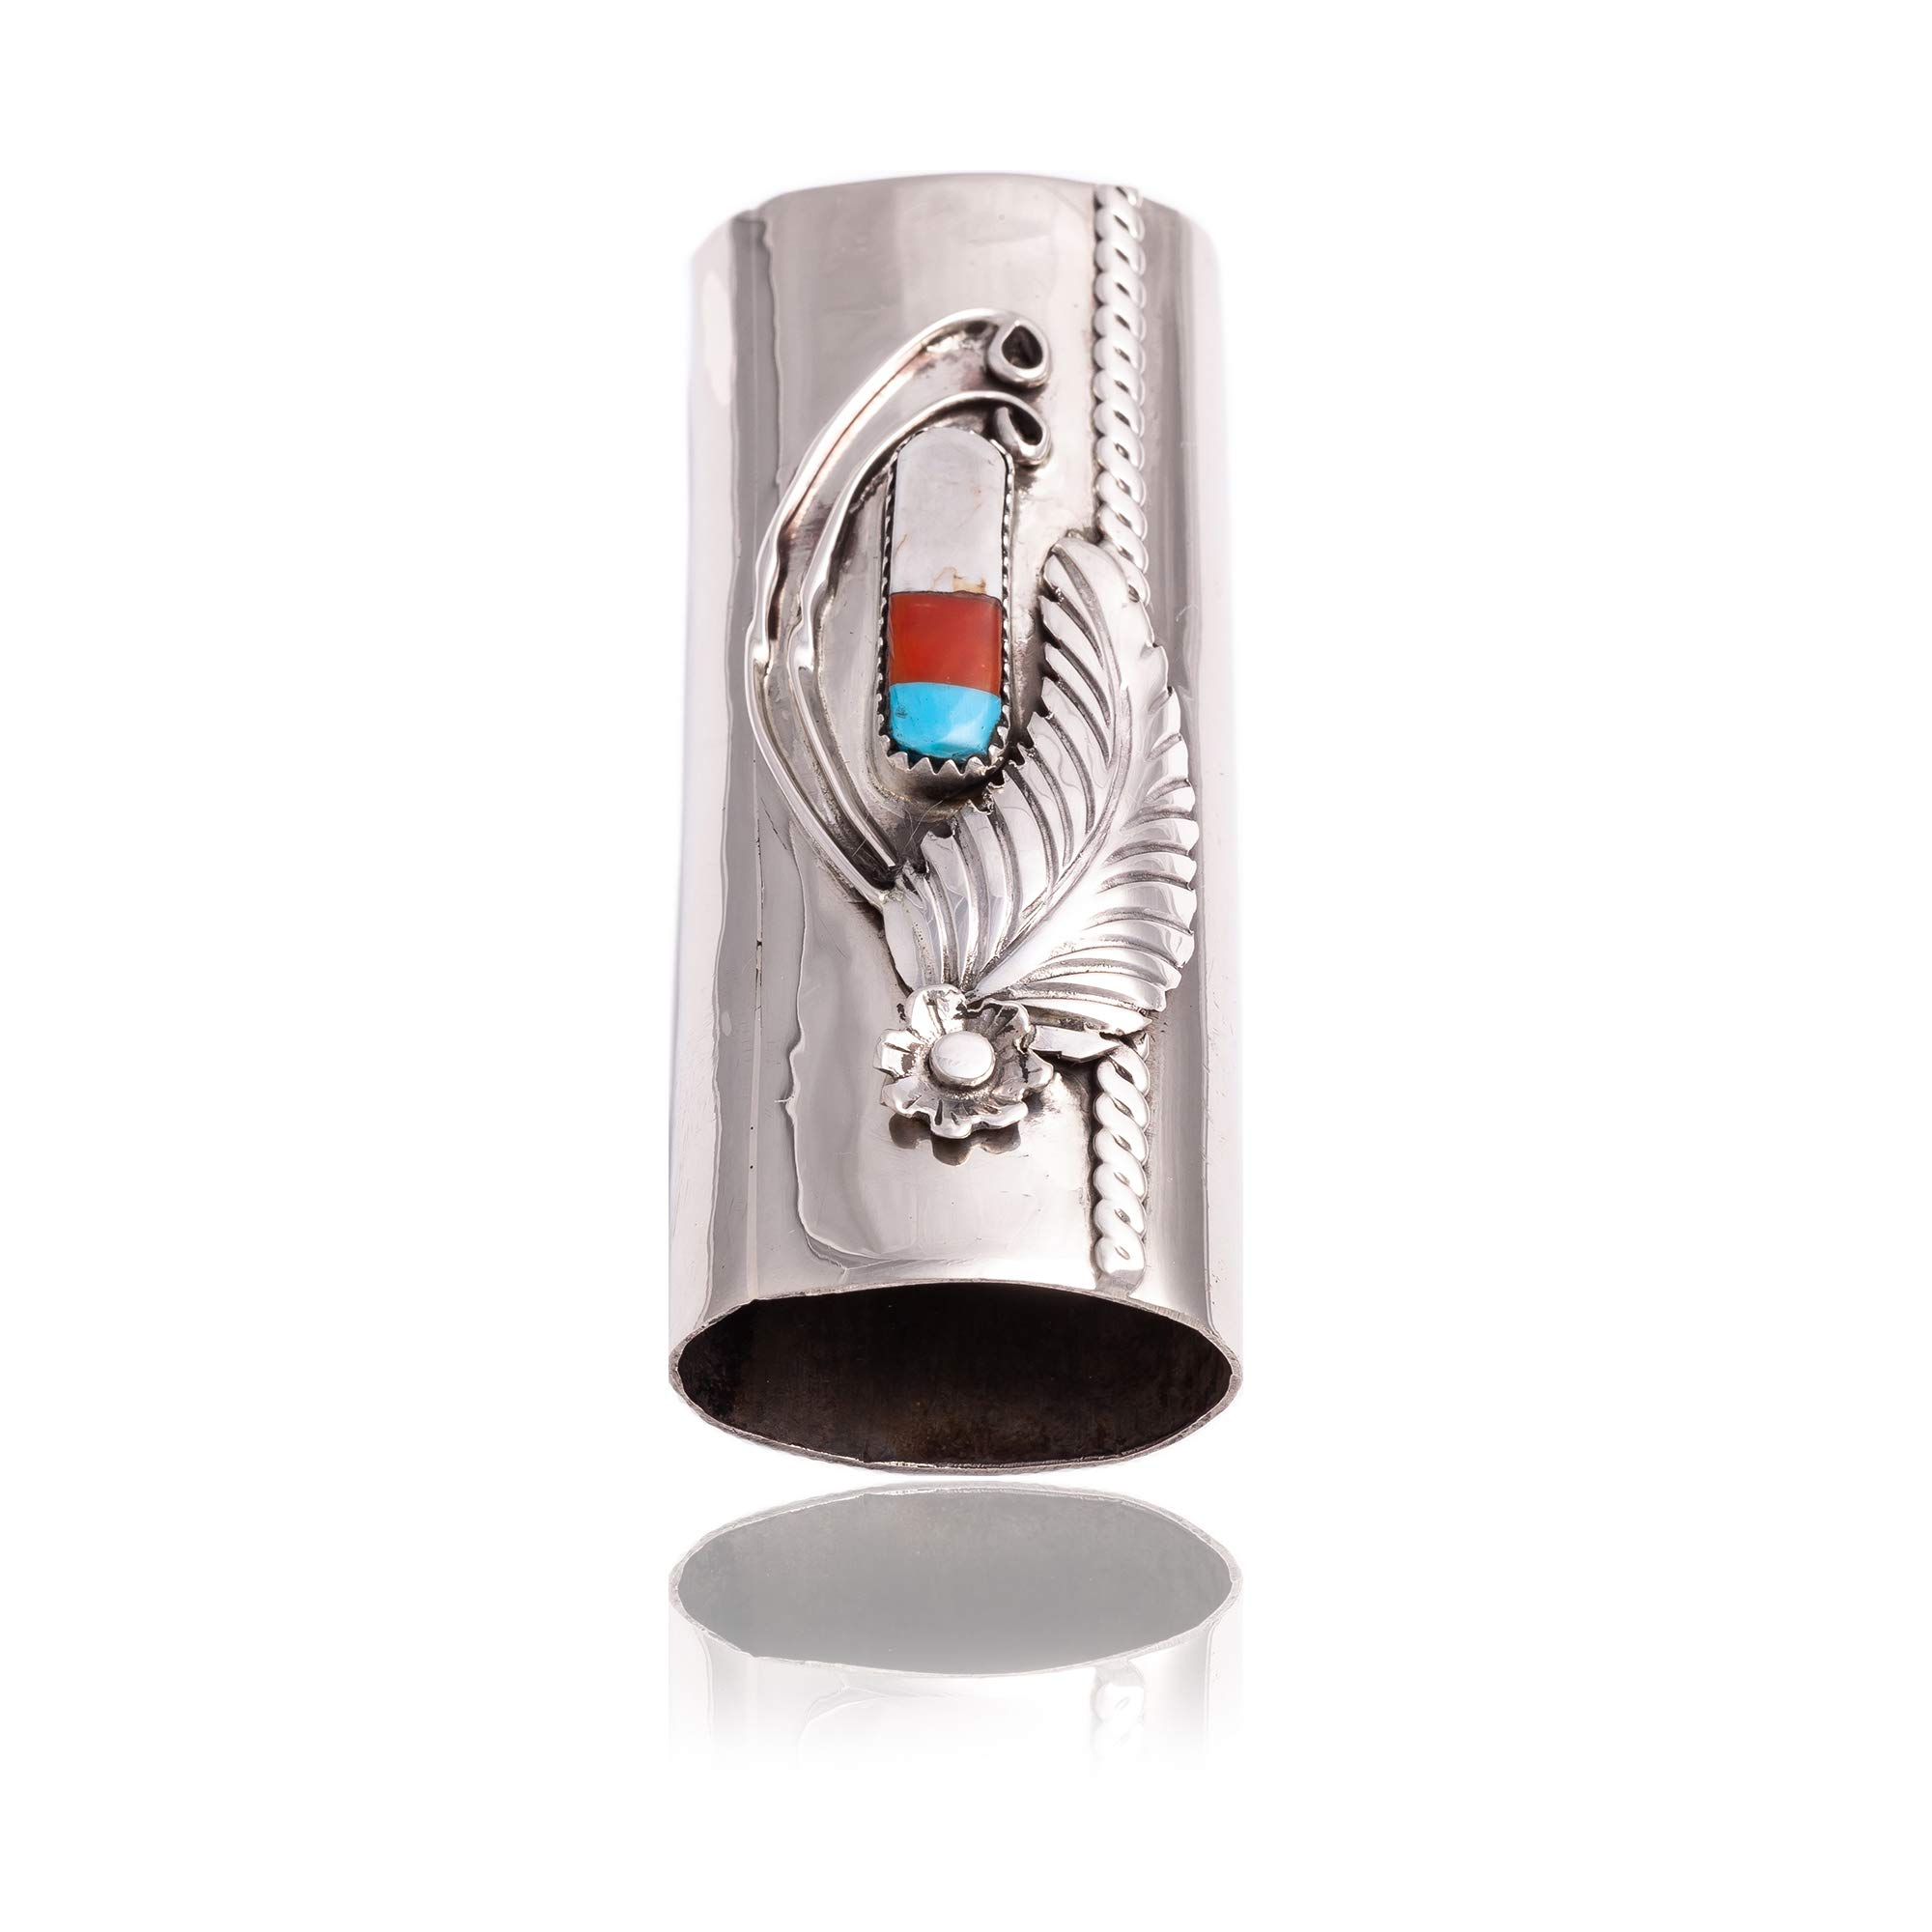 $190Tag Flower Nickel Silver Certified Navajo Inlaid Turquoise MOP Onyx Coral Lighter Case 18122 Made by Loma Siiva by Native-Bay (Image #5)